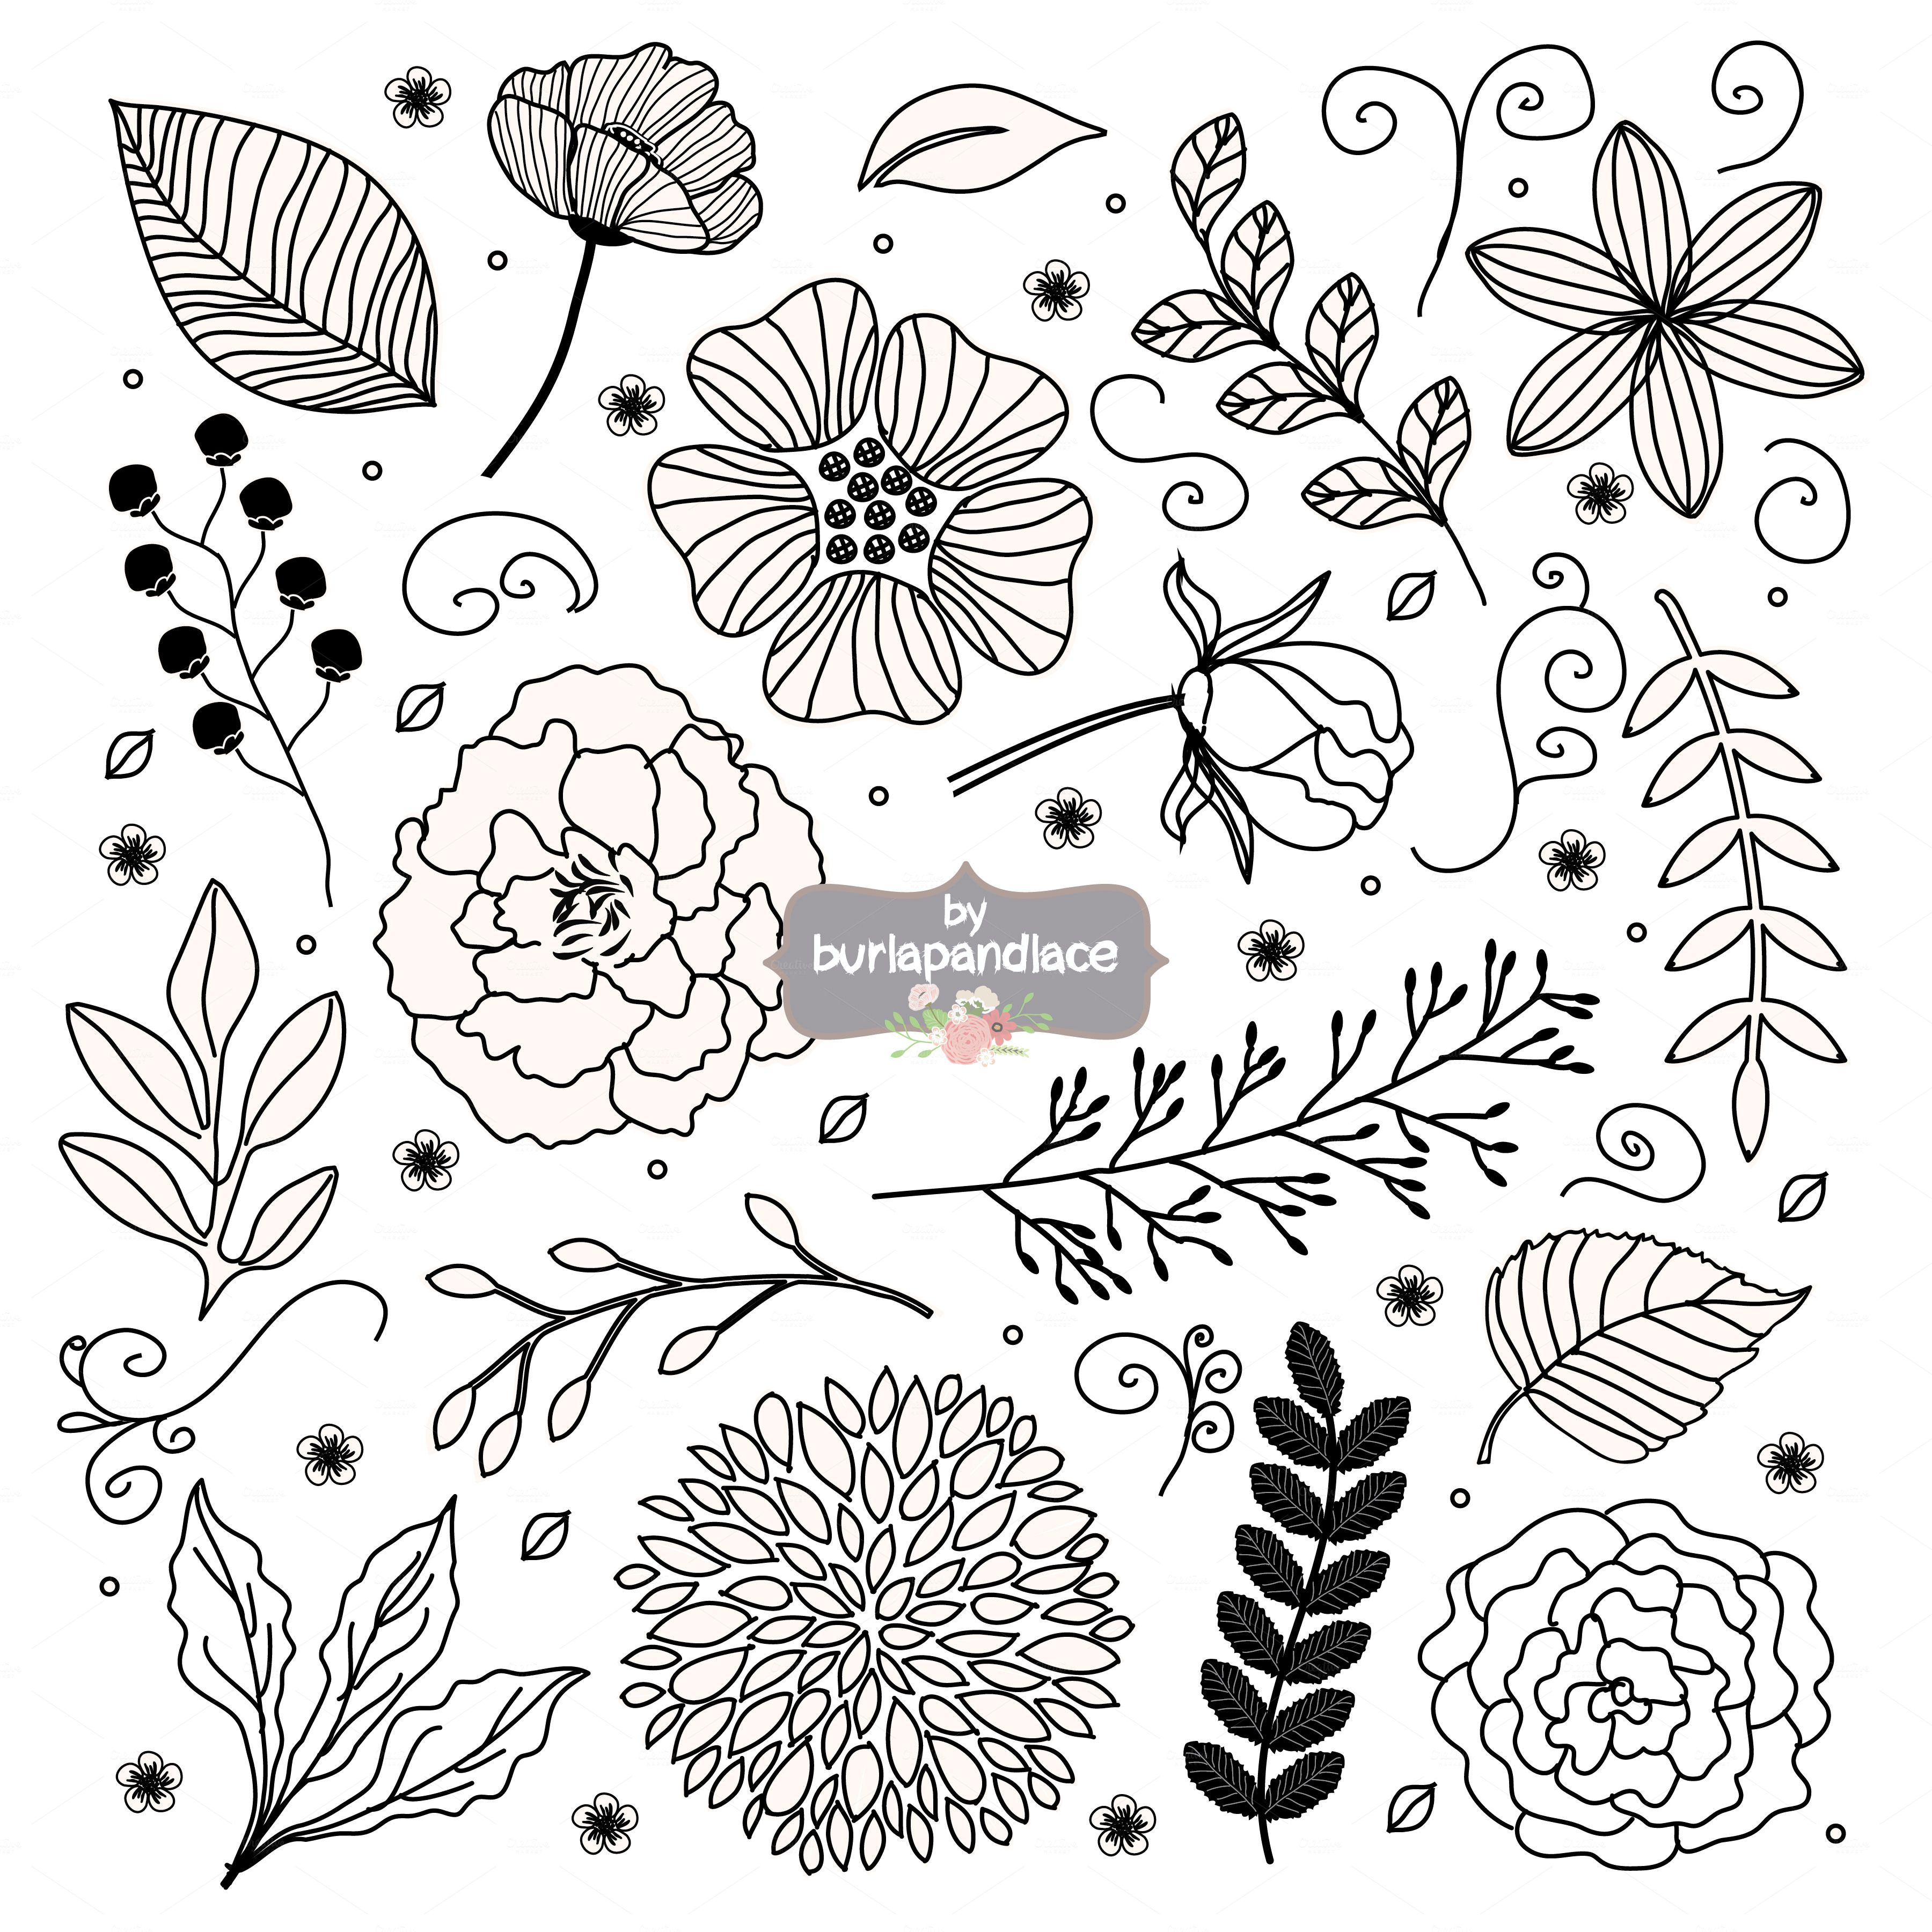 Rustic flower clipart black and white picture royalty free download Vector Rustic Black flowers cliparts by burlapandlace on ... picture royalty free download